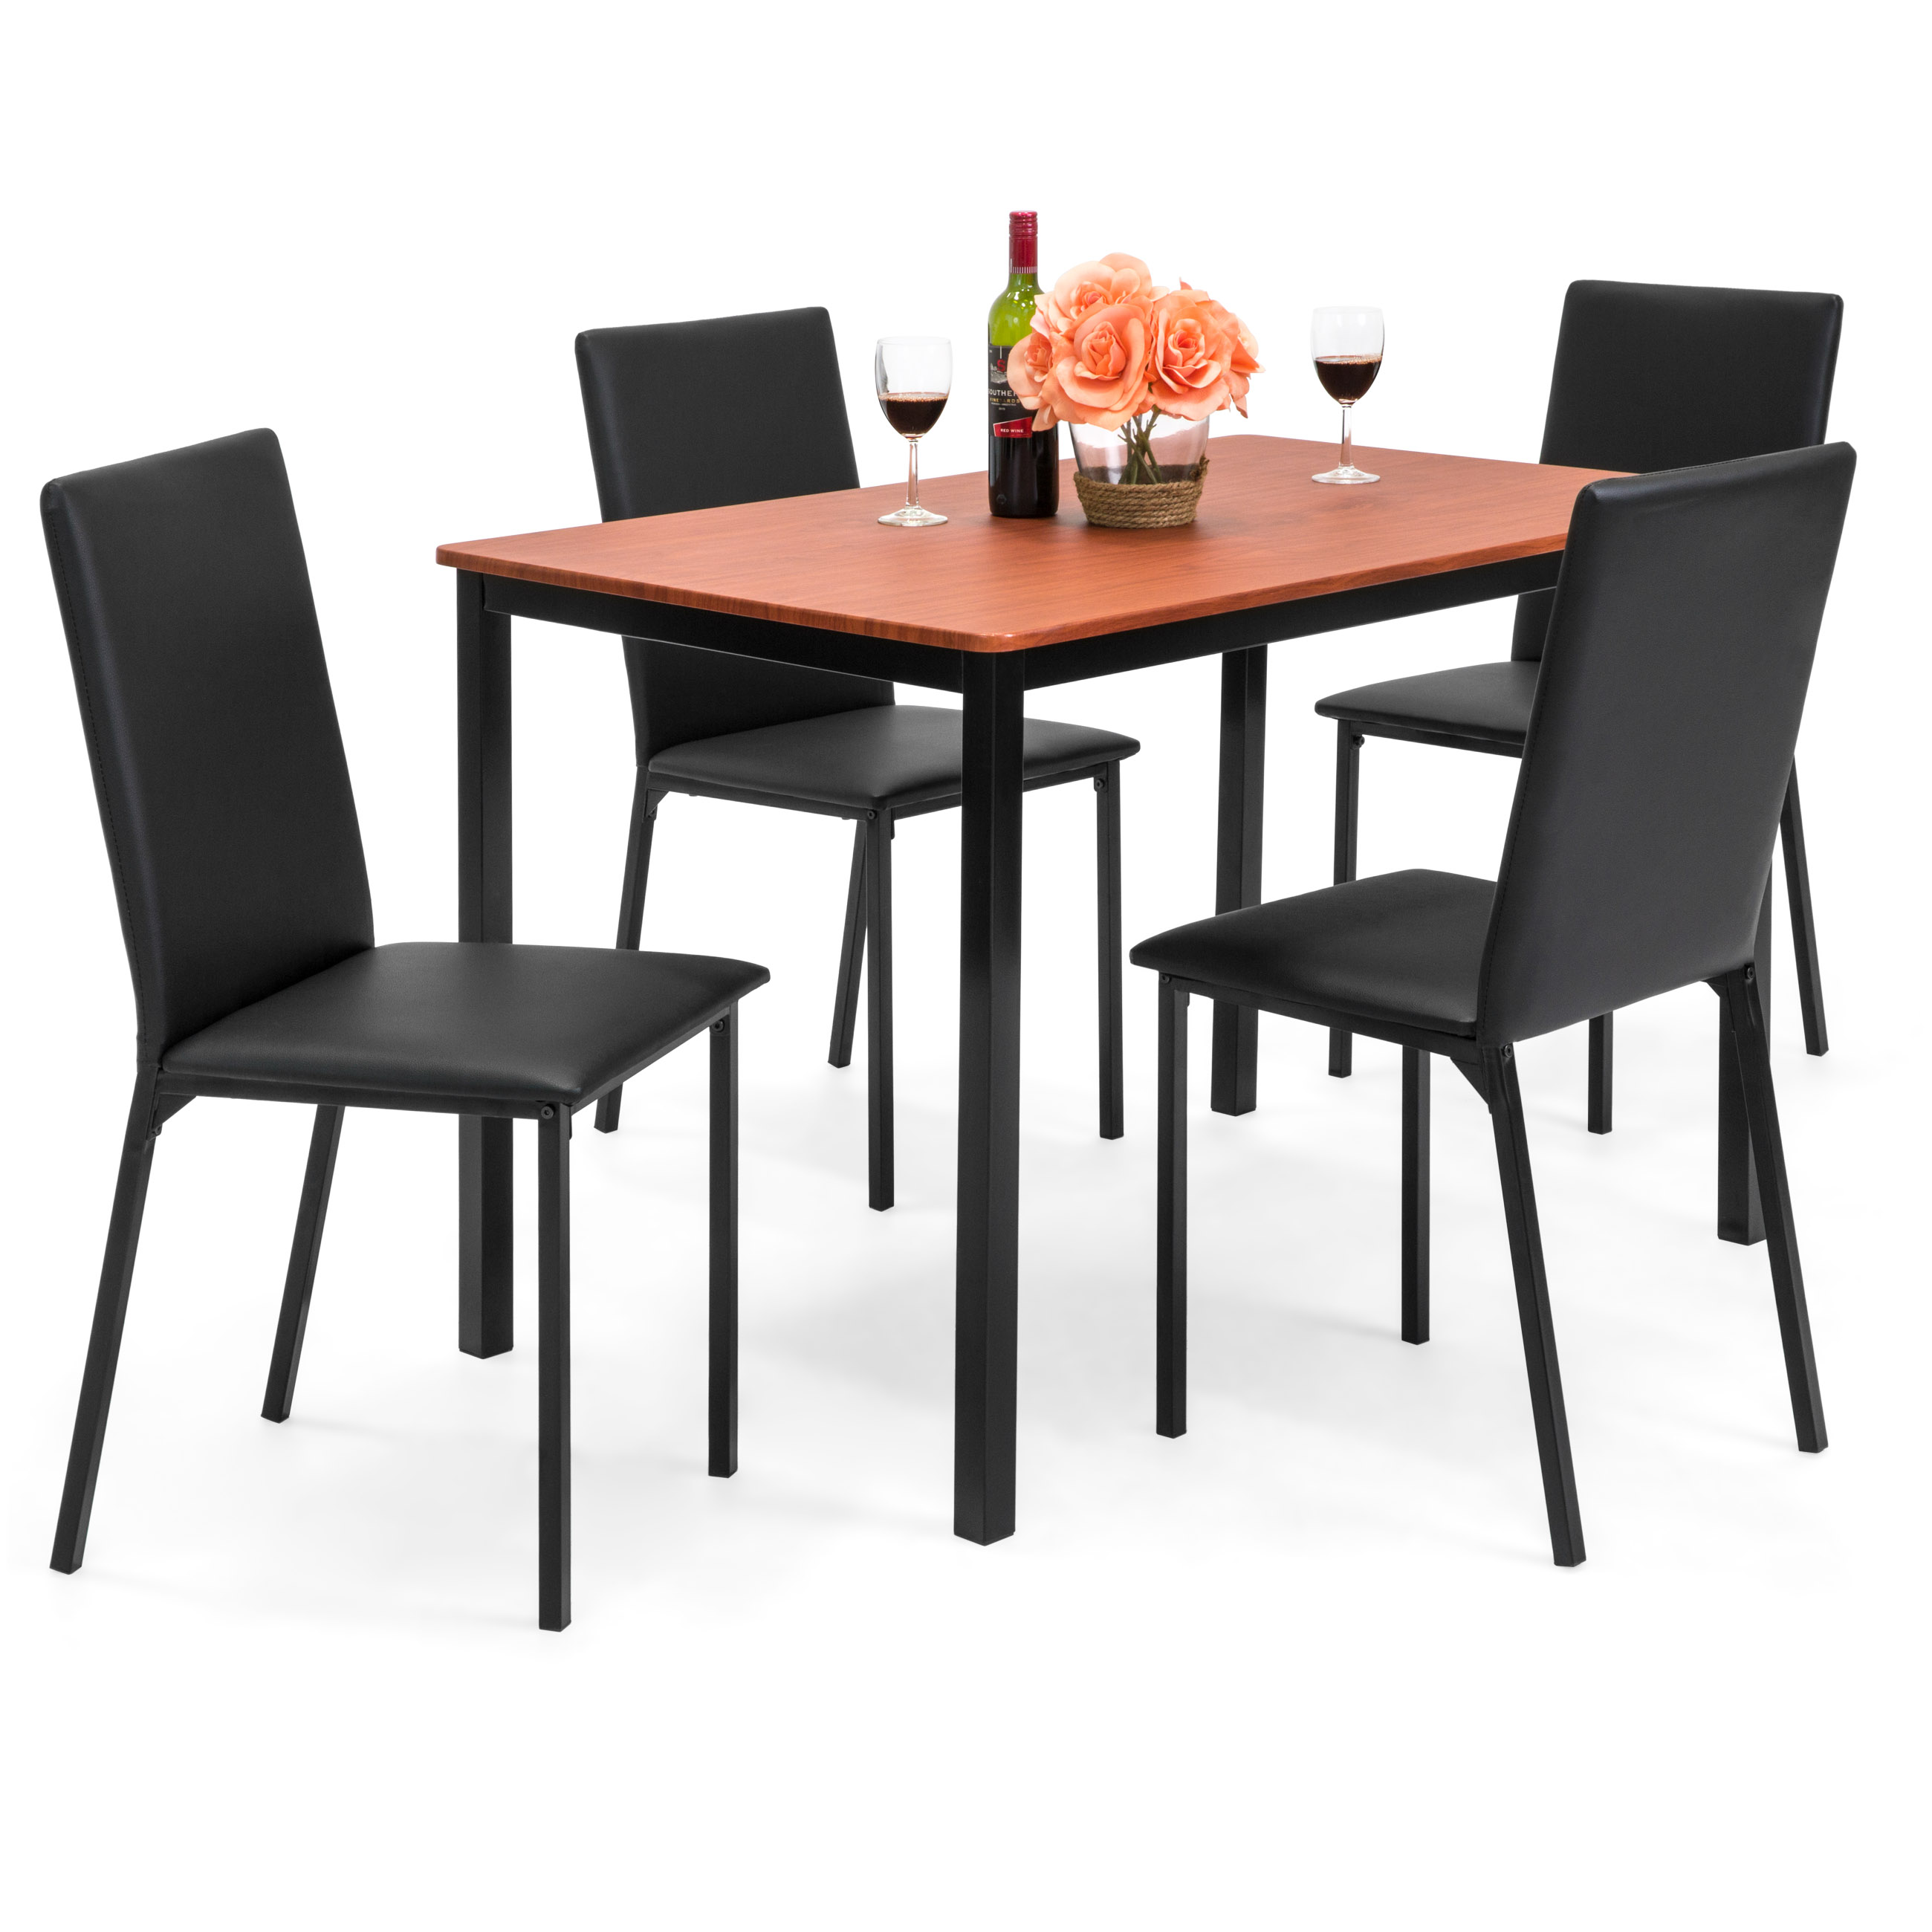 Best Choice Products 5-Piece Rectangle Dining Table Home Furniture Set w/ 4 Faux Leather Chairs - Black